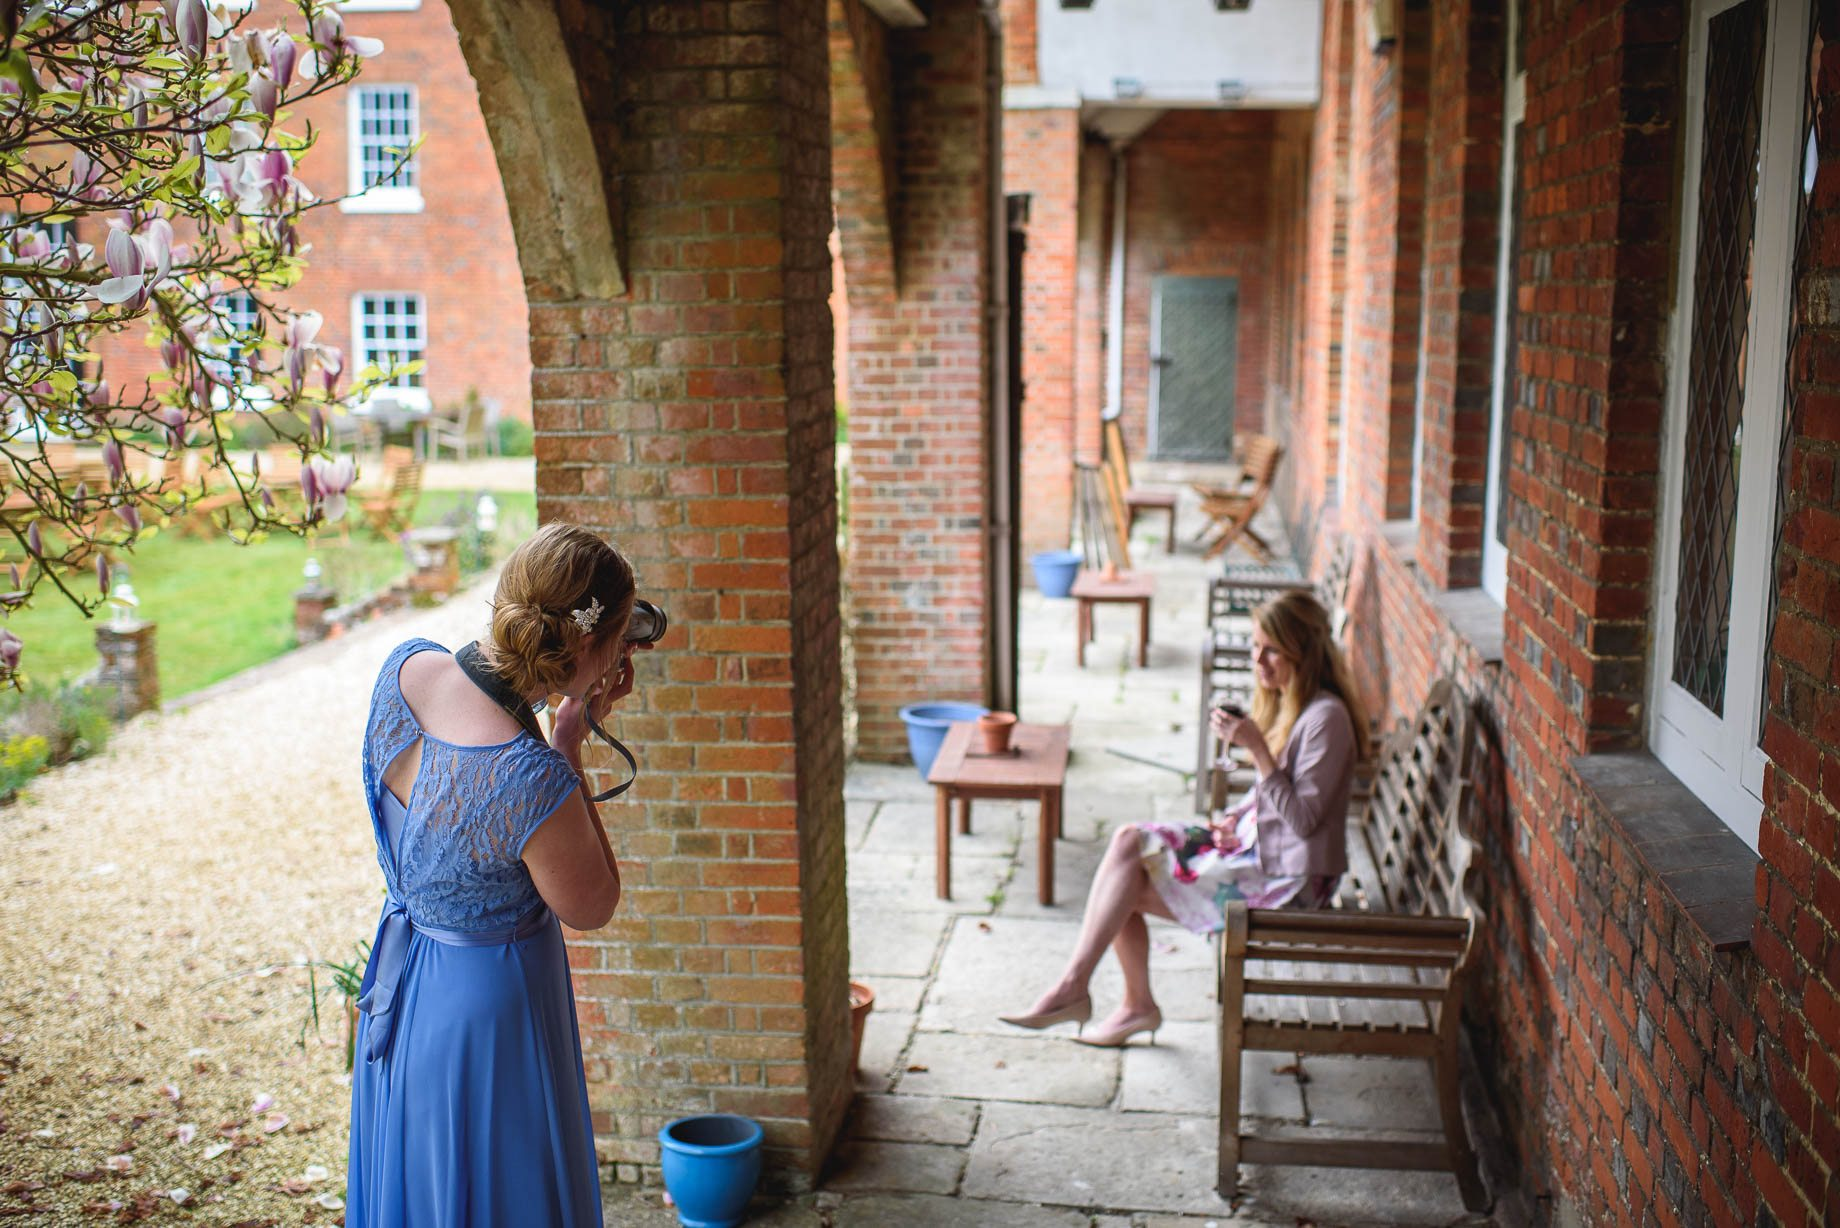 Hampshire wedding photography by Guy Collier - Emily and Tom (146 of 164)